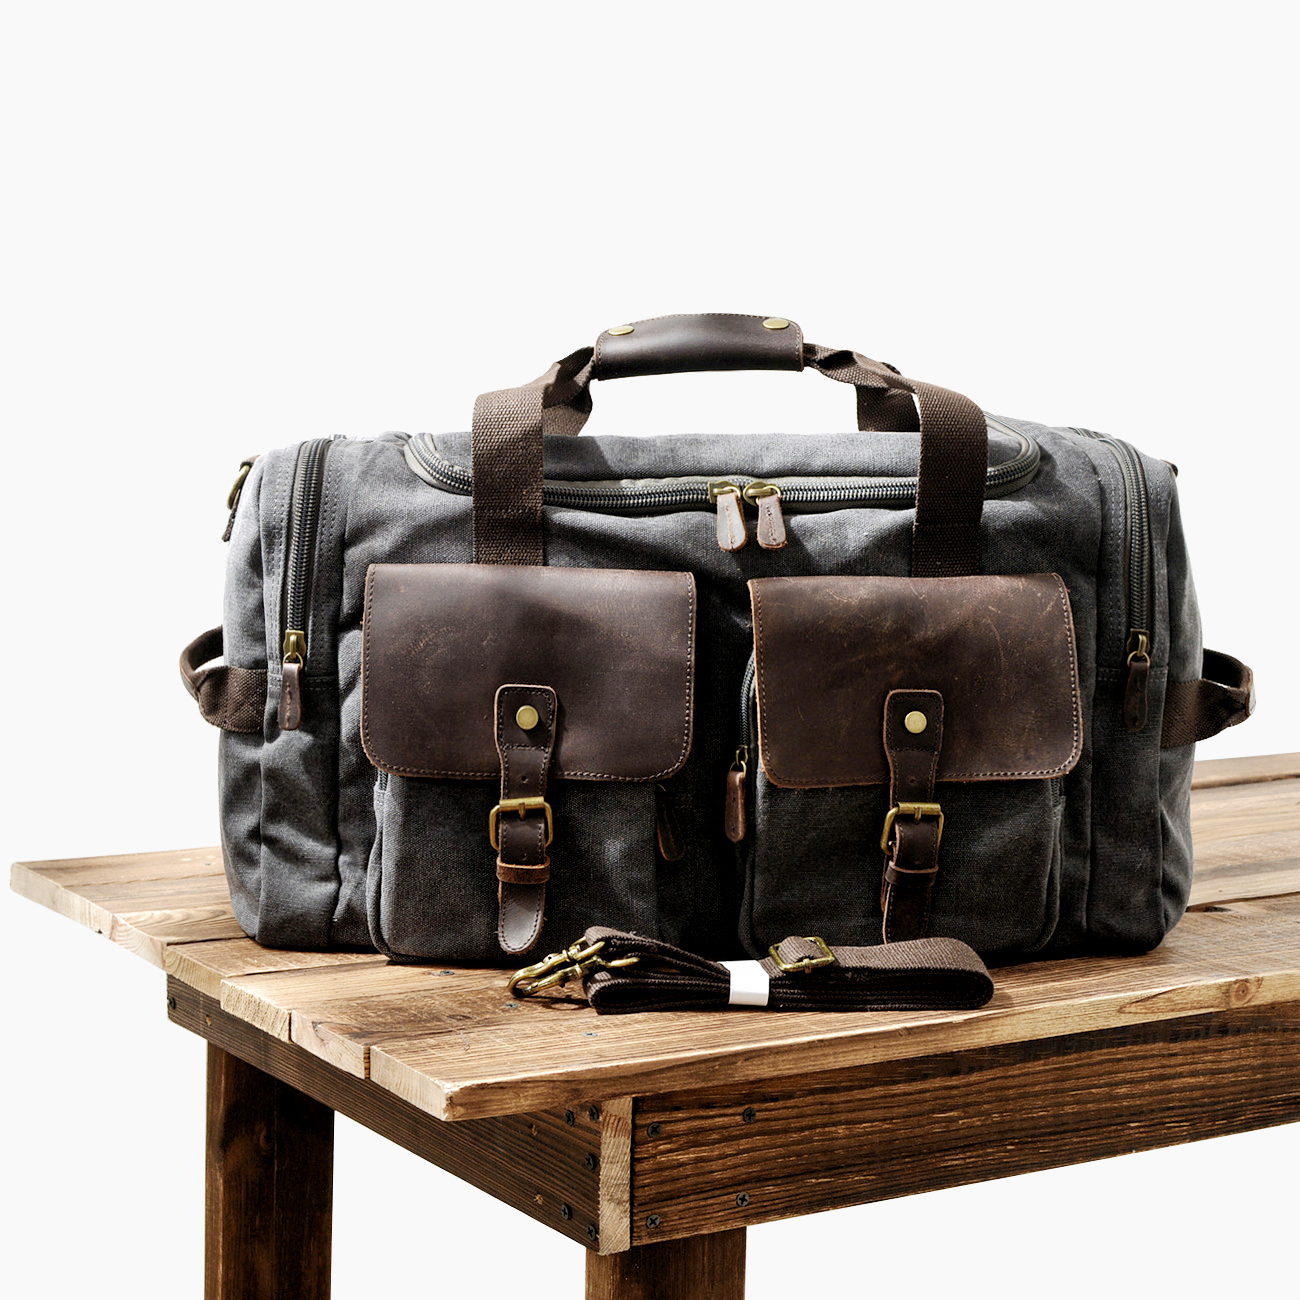 MUCHUAN Mens Canvas Leather Travel Bags Carry on Luggage Handbags Big Traveling Duffel Bags Tote Large